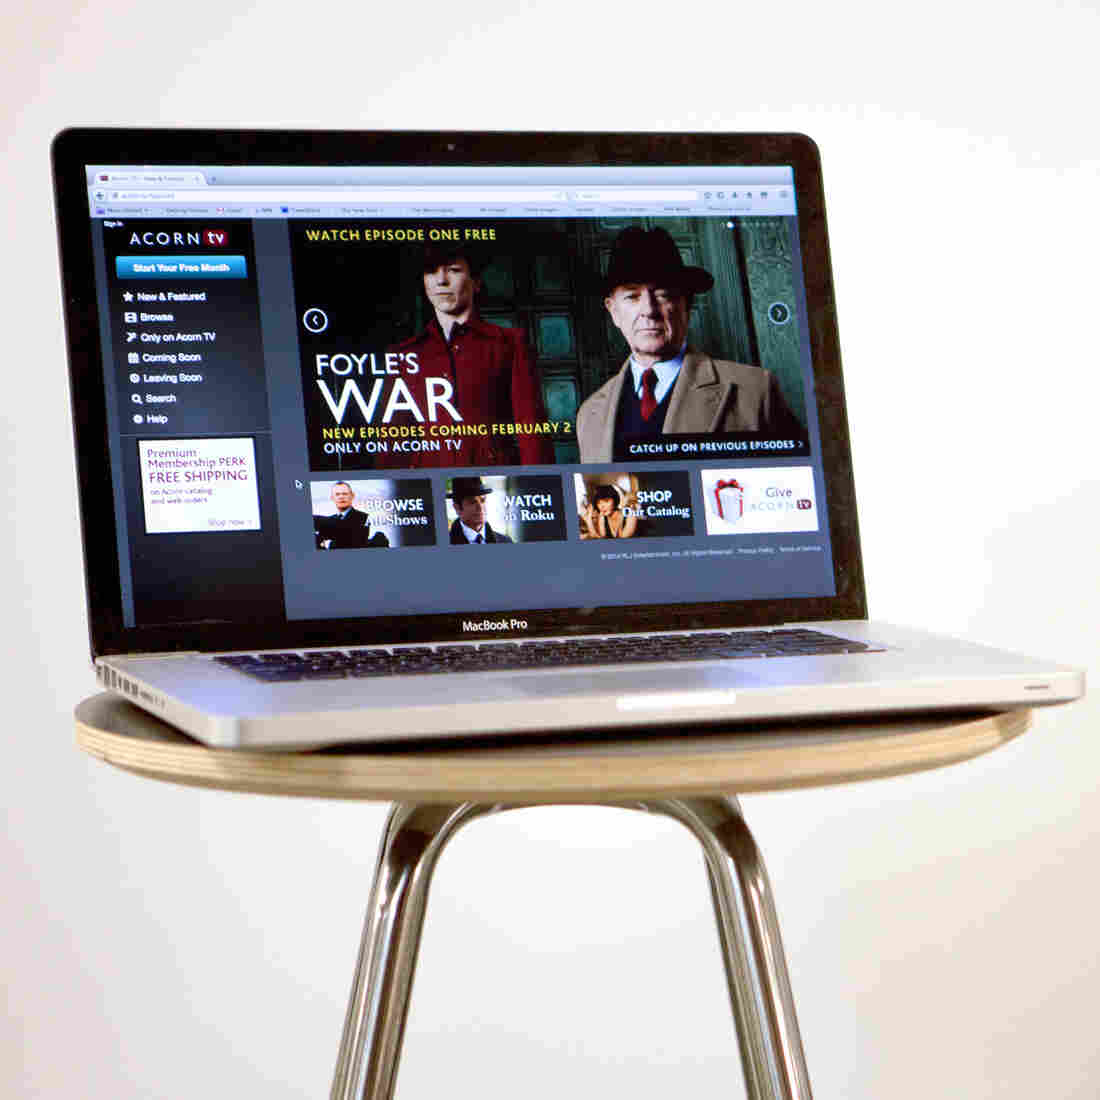 American viewers hoping to catch the last season of the hit British show Foyle's War will have to sign up for the boutique digital portal Acorn.tv.